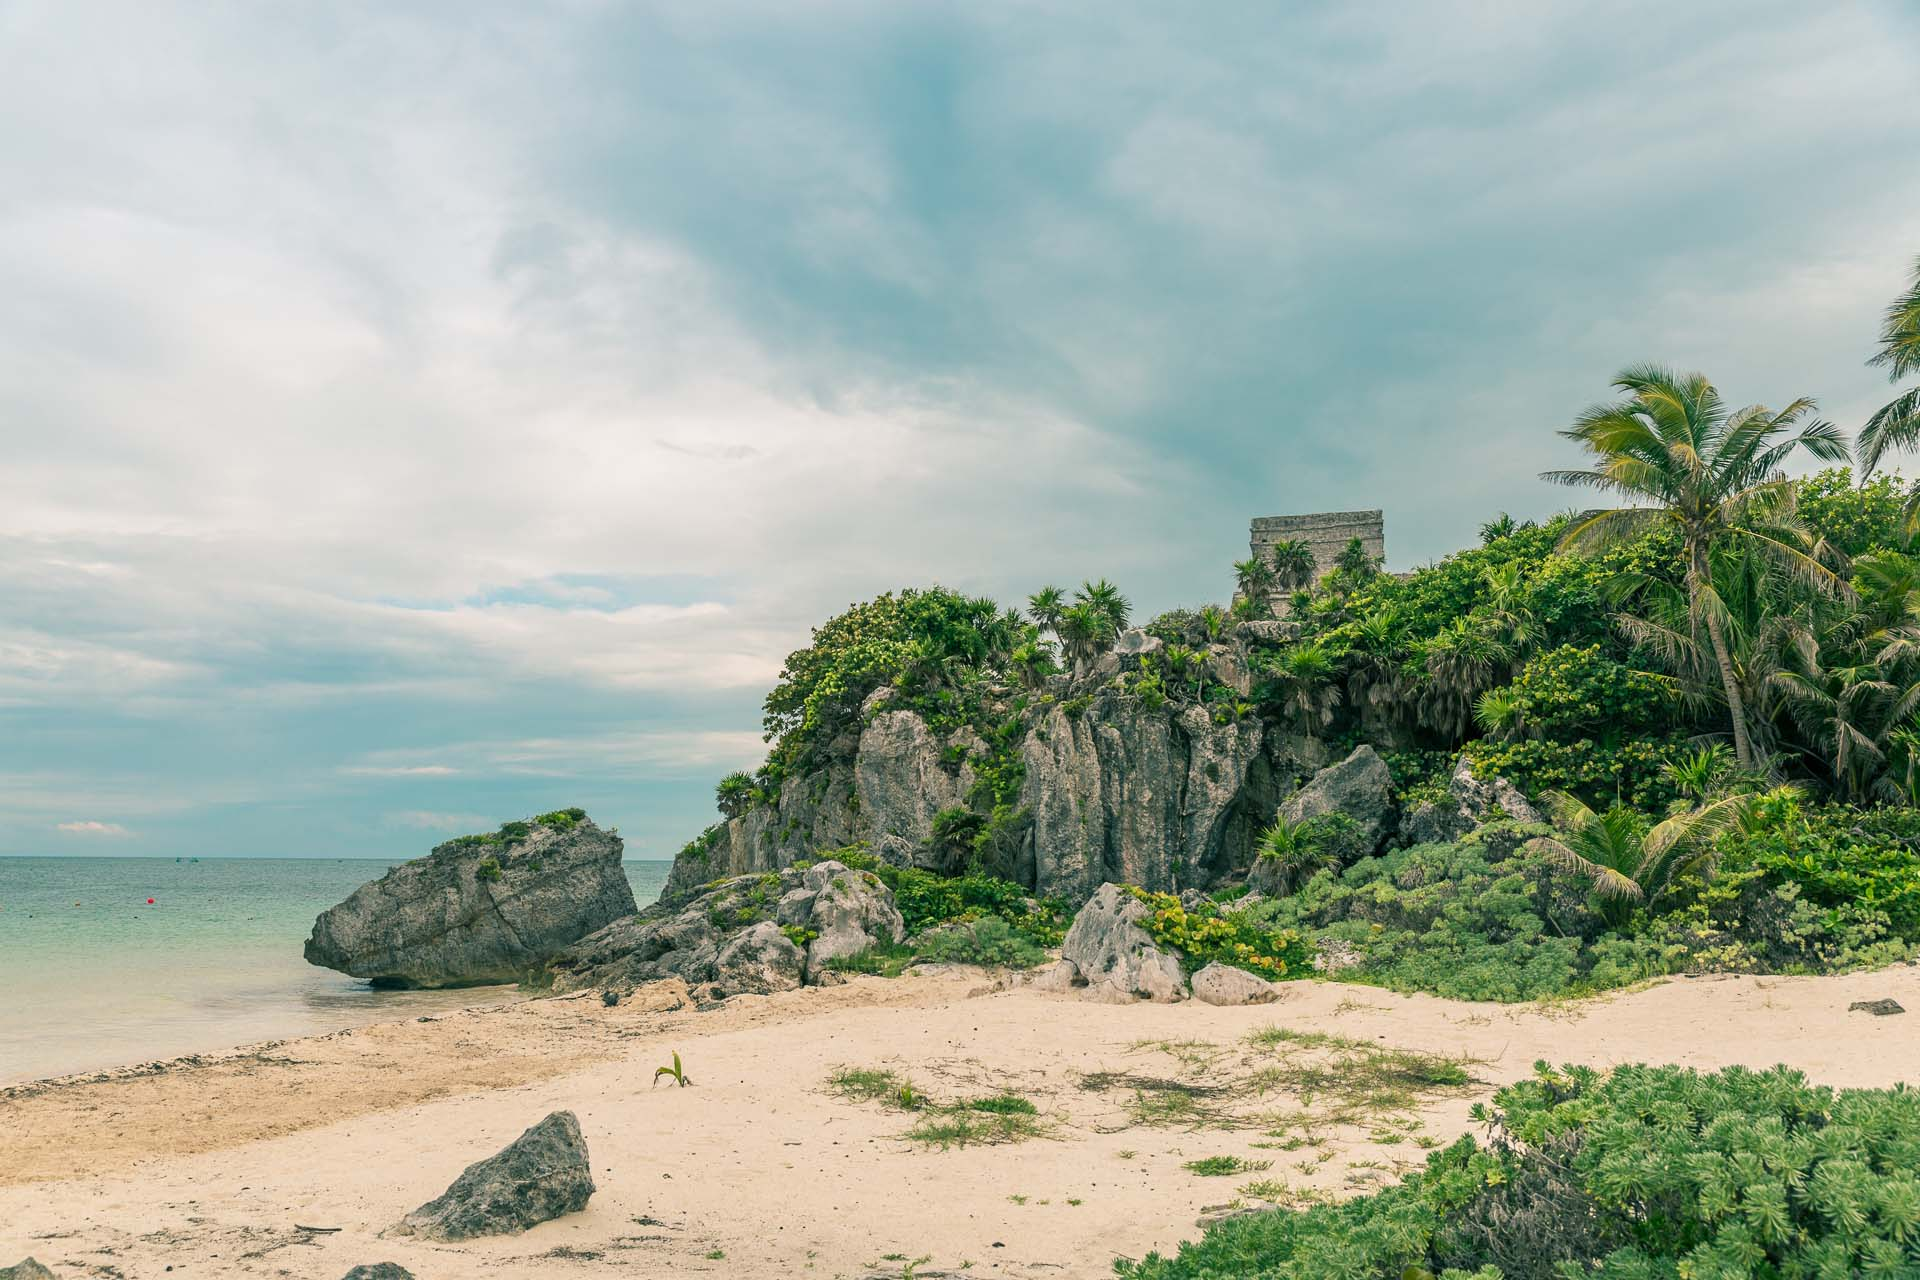 Next stop on our way through the peninsula was Tulum, a well preserved maya site dramatically situated on the coast of the Caribbean sea.